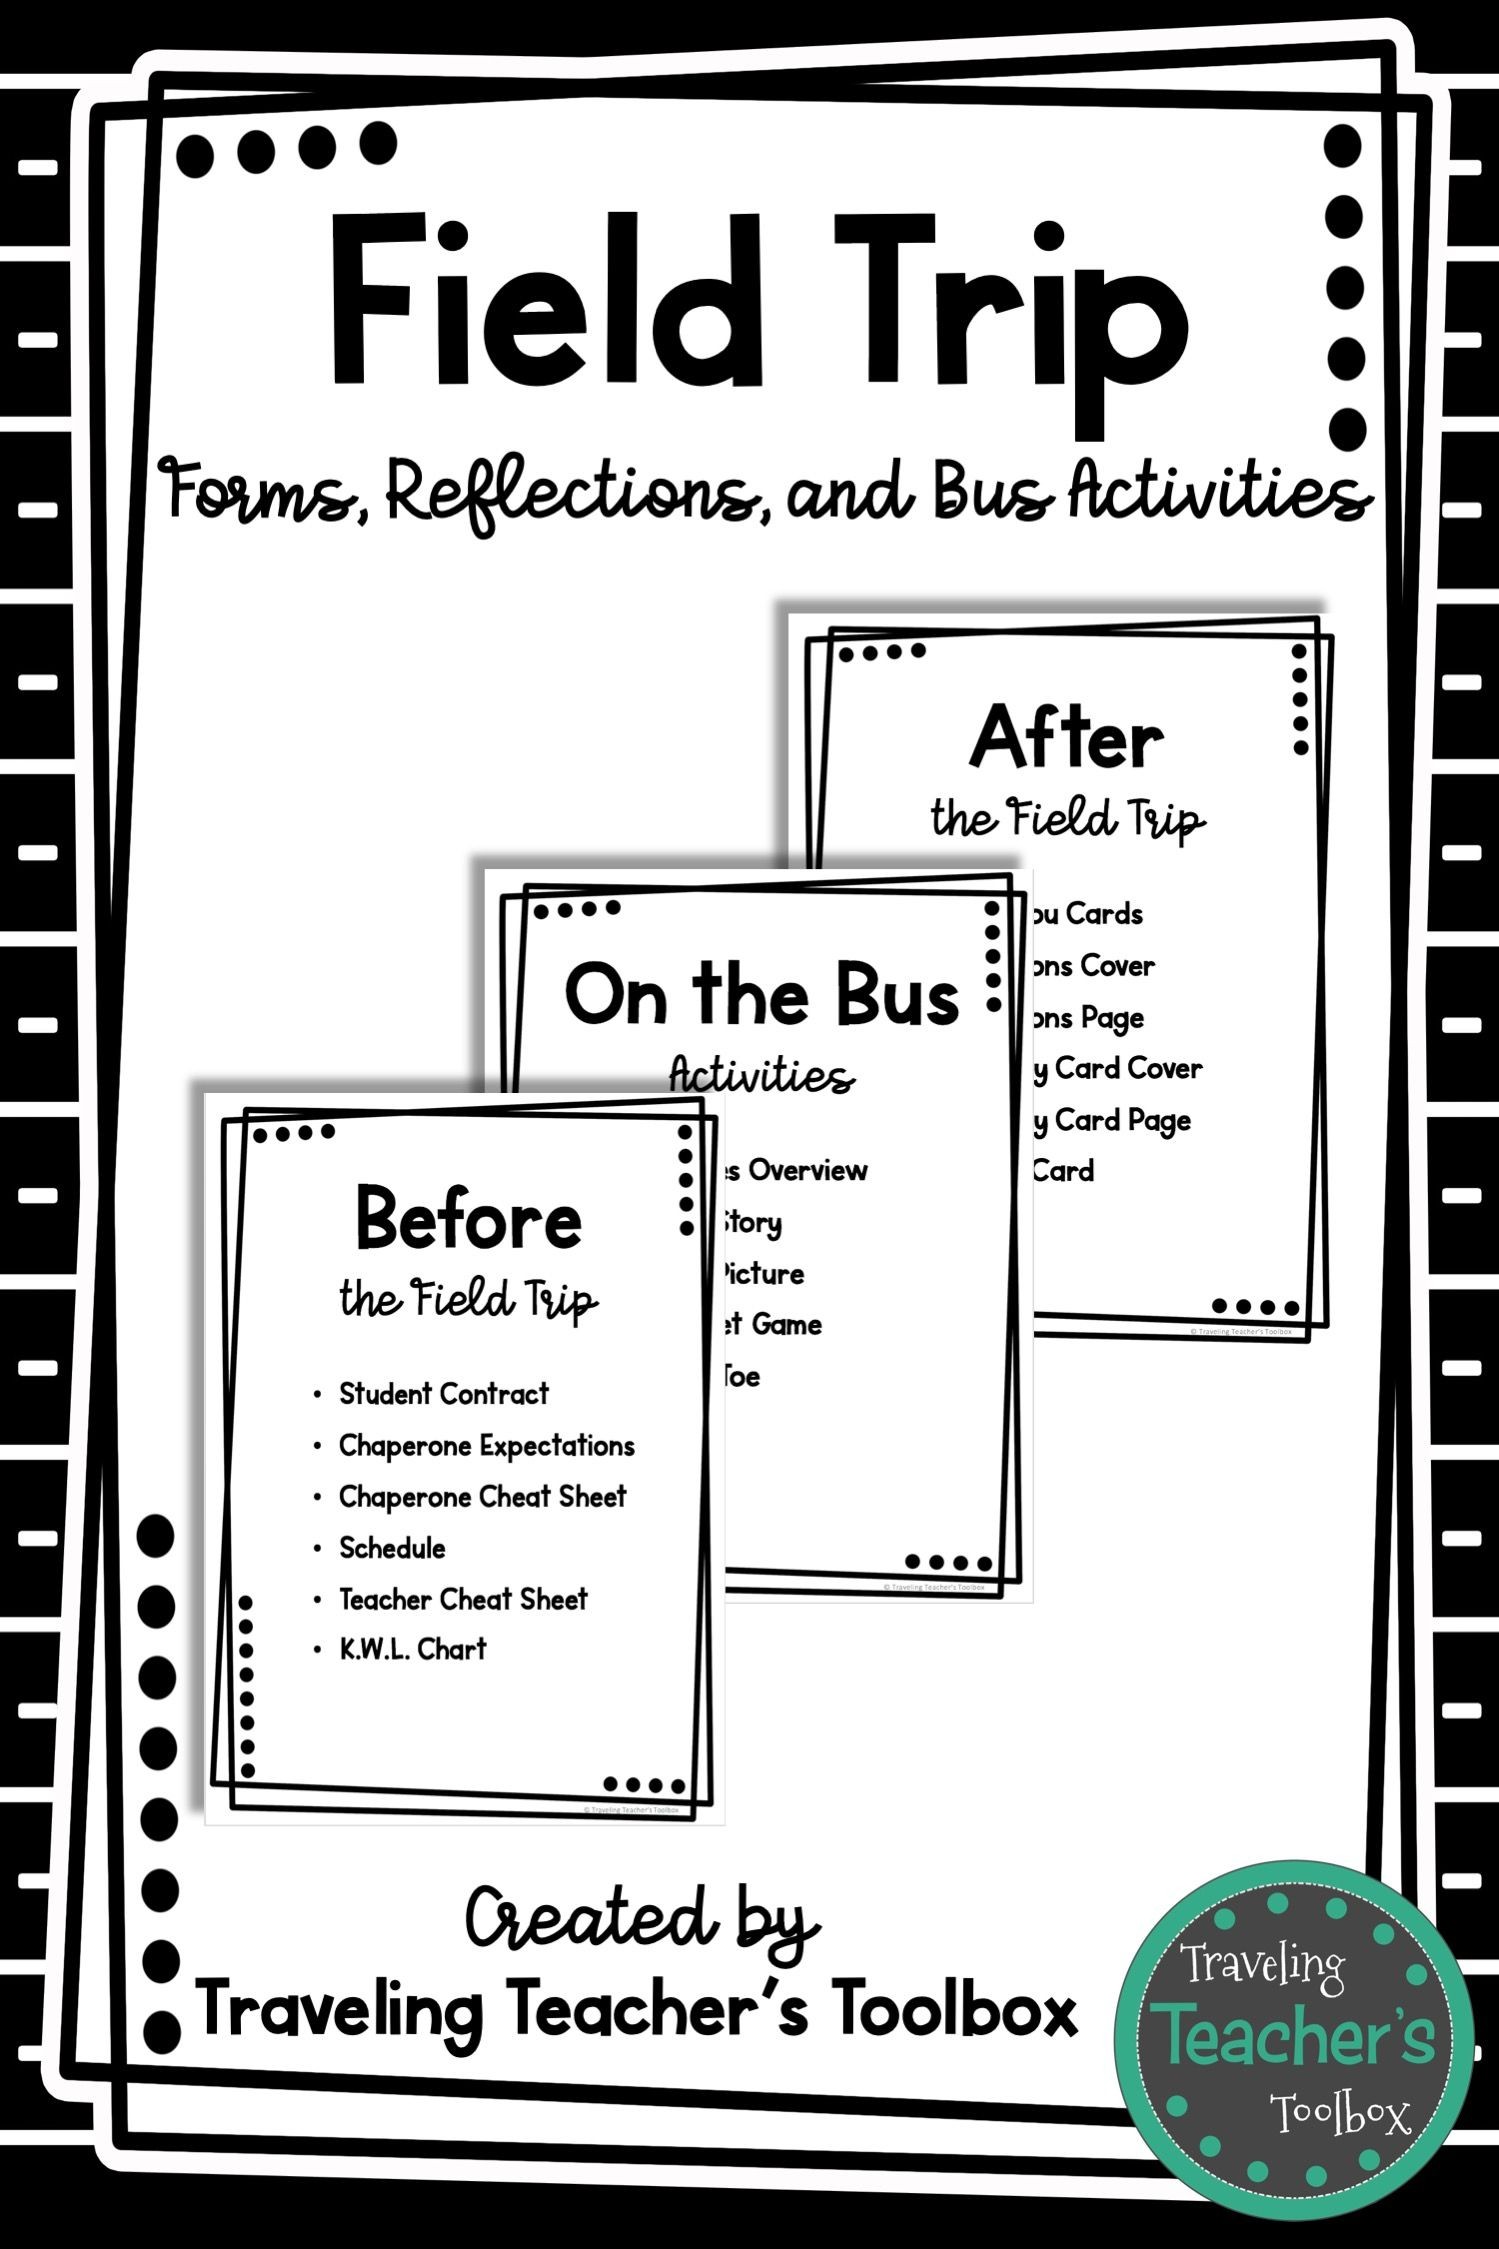 Field Trip Forms Reflections And Bus Activities With